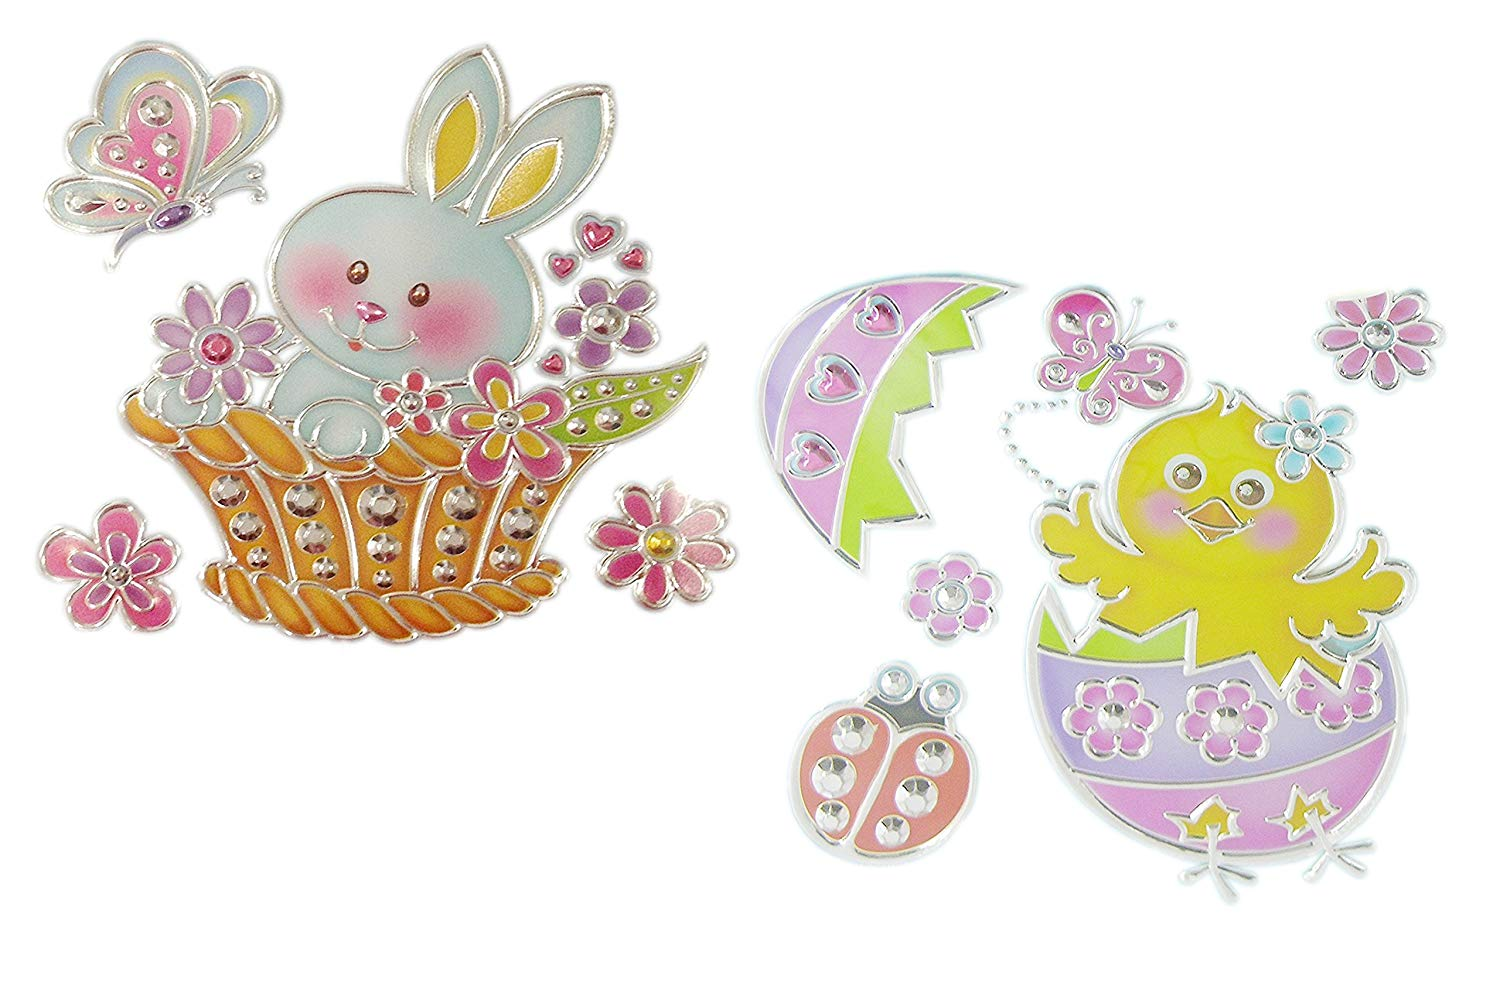 Easter Spring Window Decoration Bundle - Adorable Bunny Ducky and Chick Sun Catcher Window Decal Stickers (2-Pack Bunny & Chick)